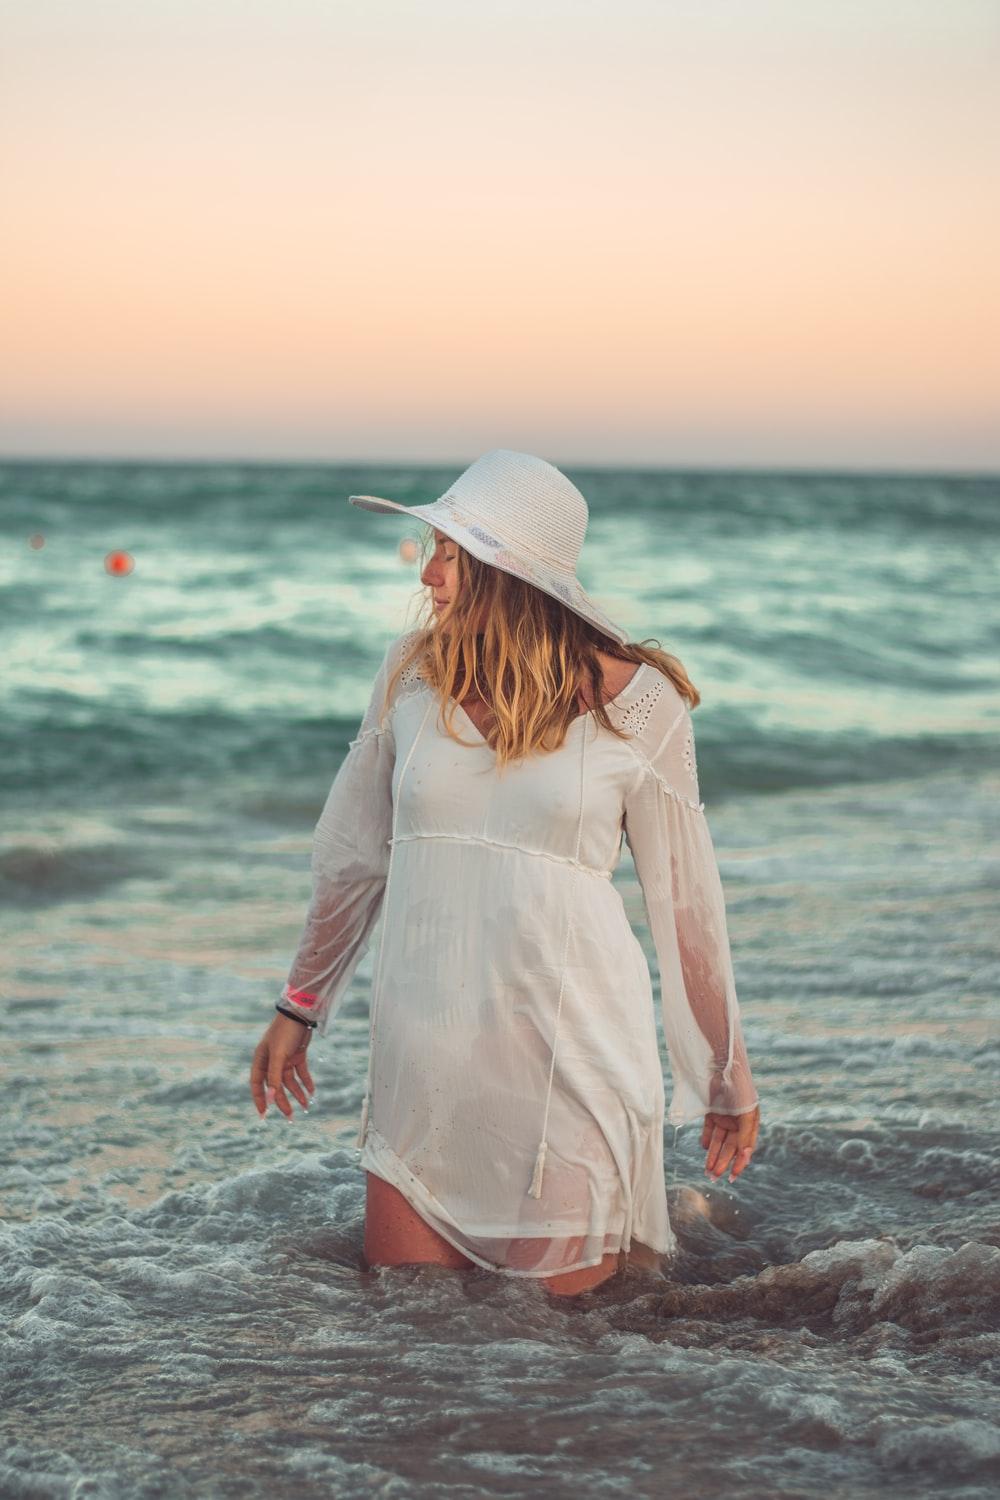 woman in white long sleeve dress standing on beach during daytime